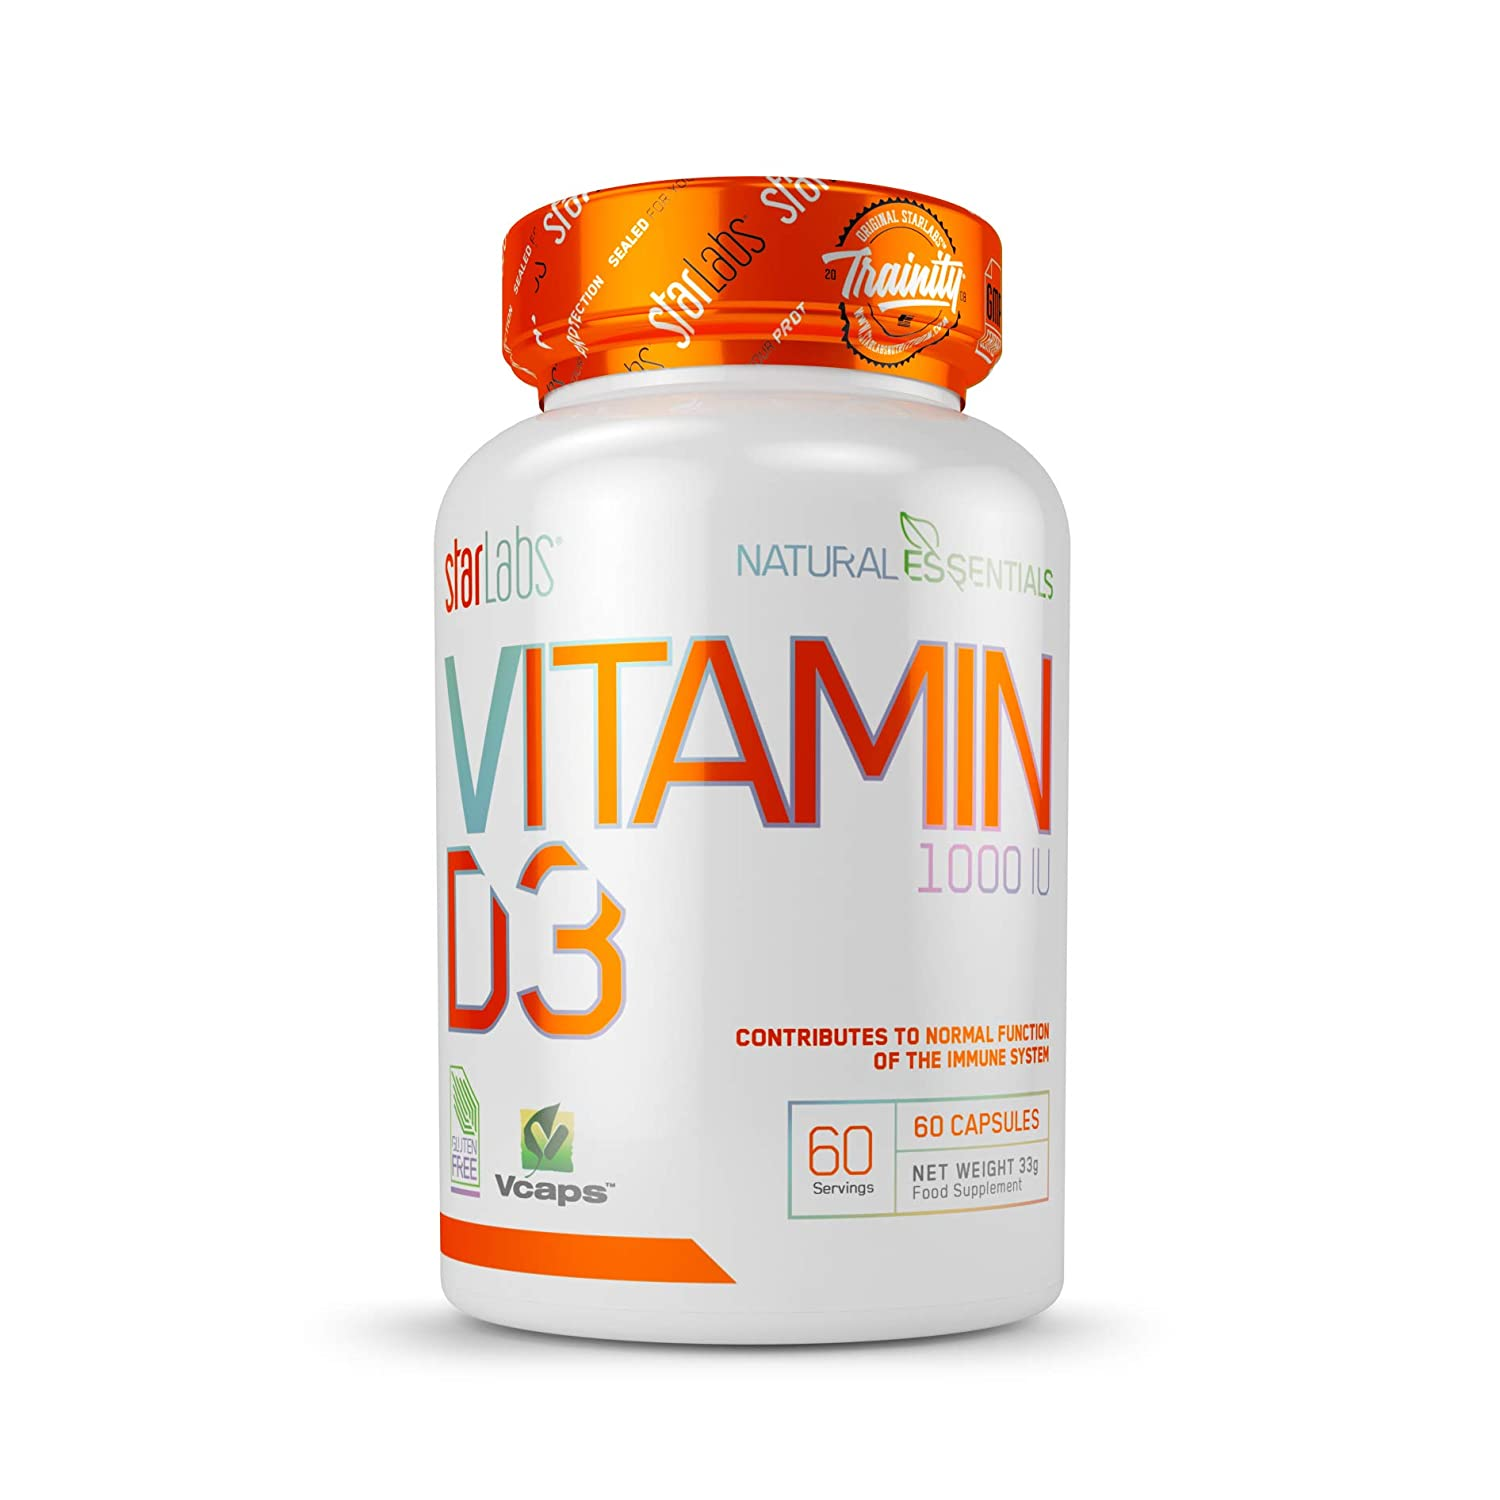 Starlabs Nutrition VITAMIN D3-60 Cápsulas: Amazon.es: Salud y ...